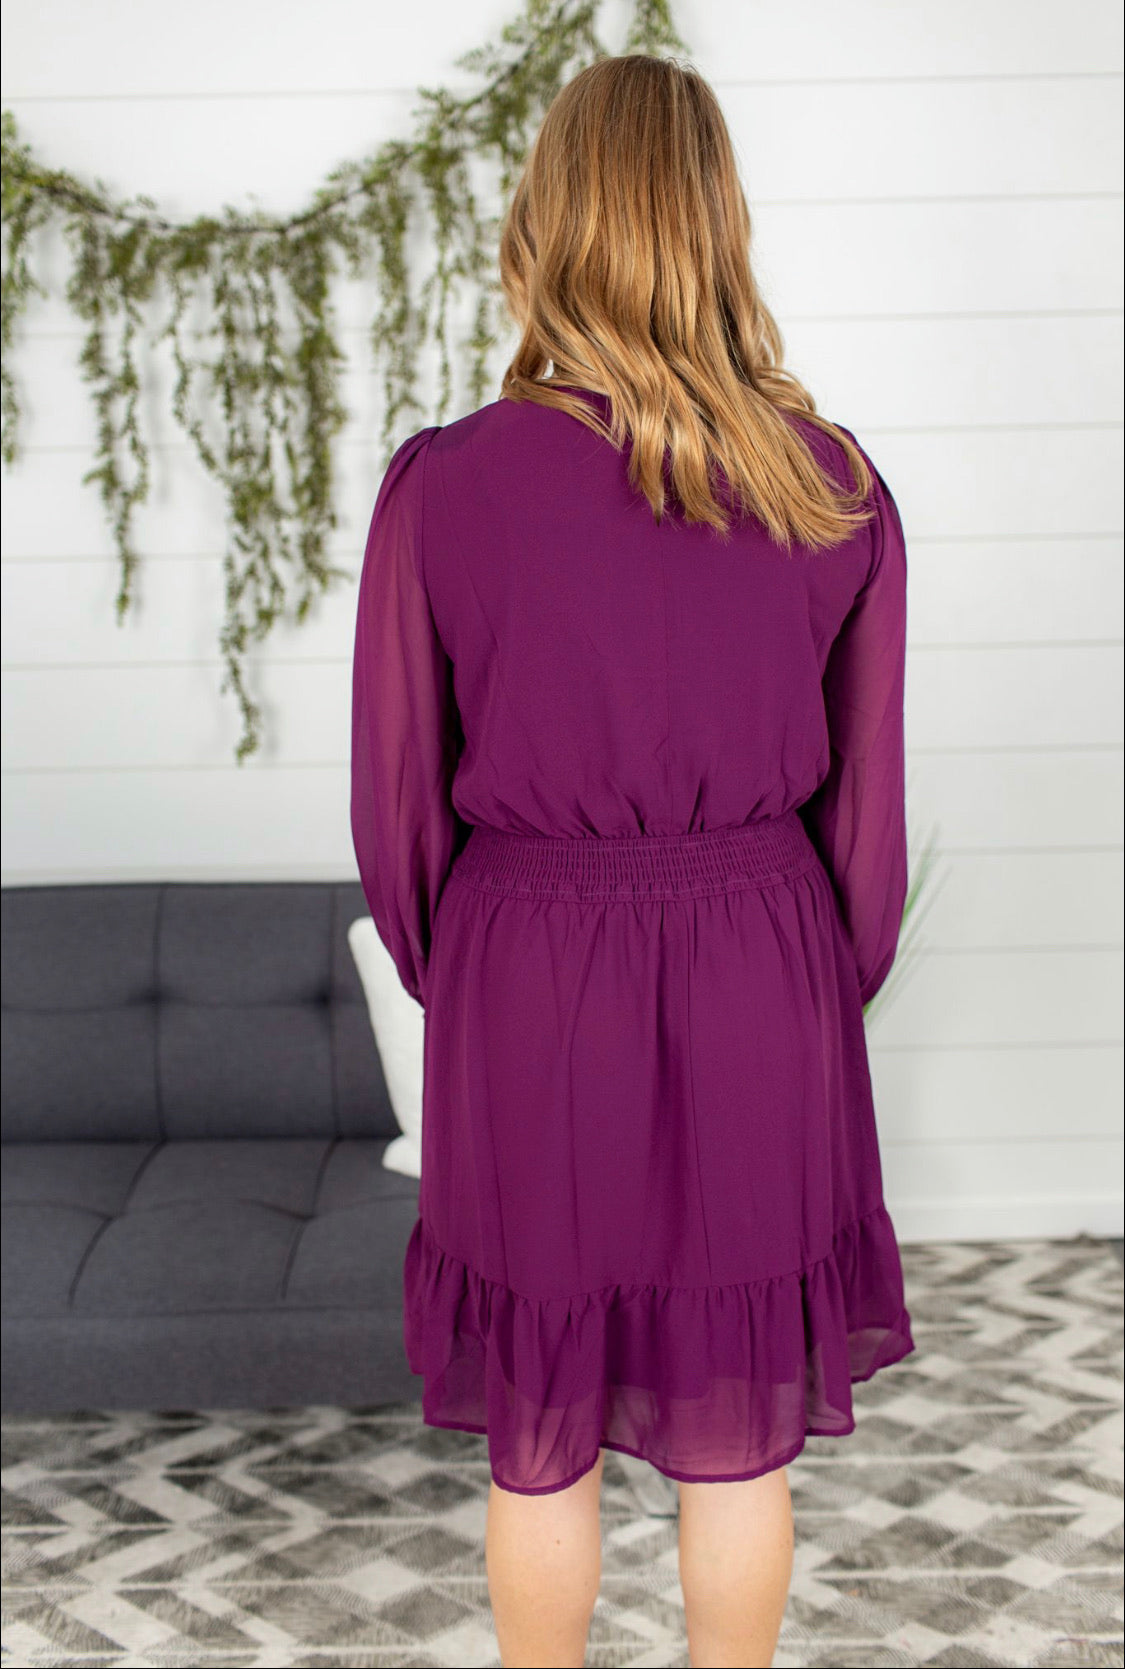 Smocked Waist Ruffle Dress - Plum